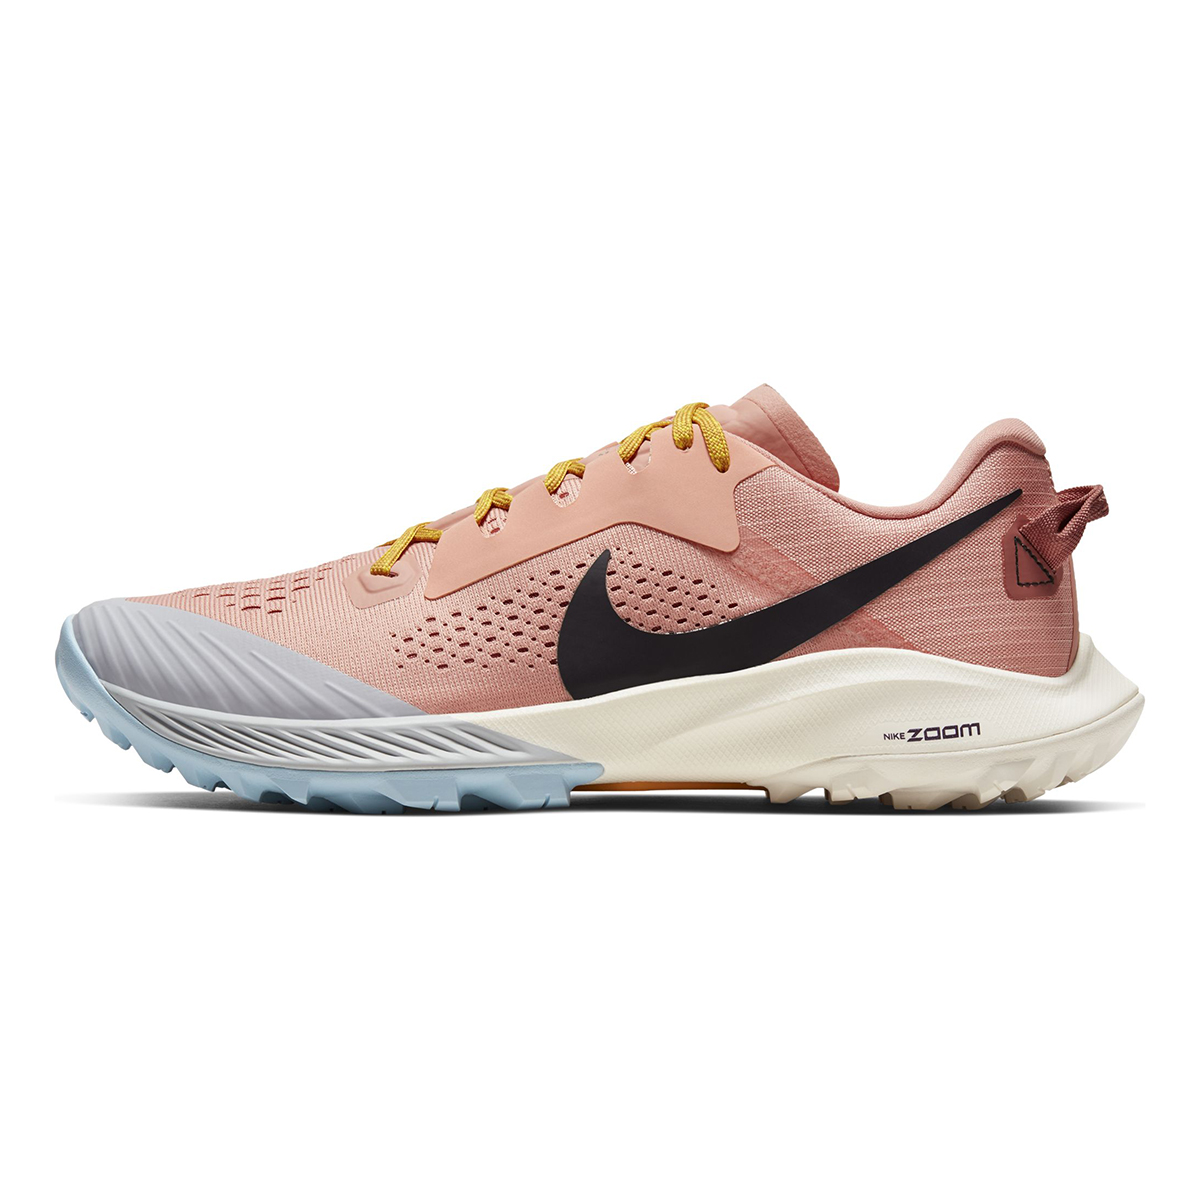 Women's Nike Air Zoom Terra Kiger 6 Trail Running Shoe - Color: Pink Quartz/Canyon Pink/Sky Grey/Burgundy Ash (Regular Width) - Size: 5, Pink Quartz/Canyon Pink/Sky Grey/Burgundy Ash, large, image 2